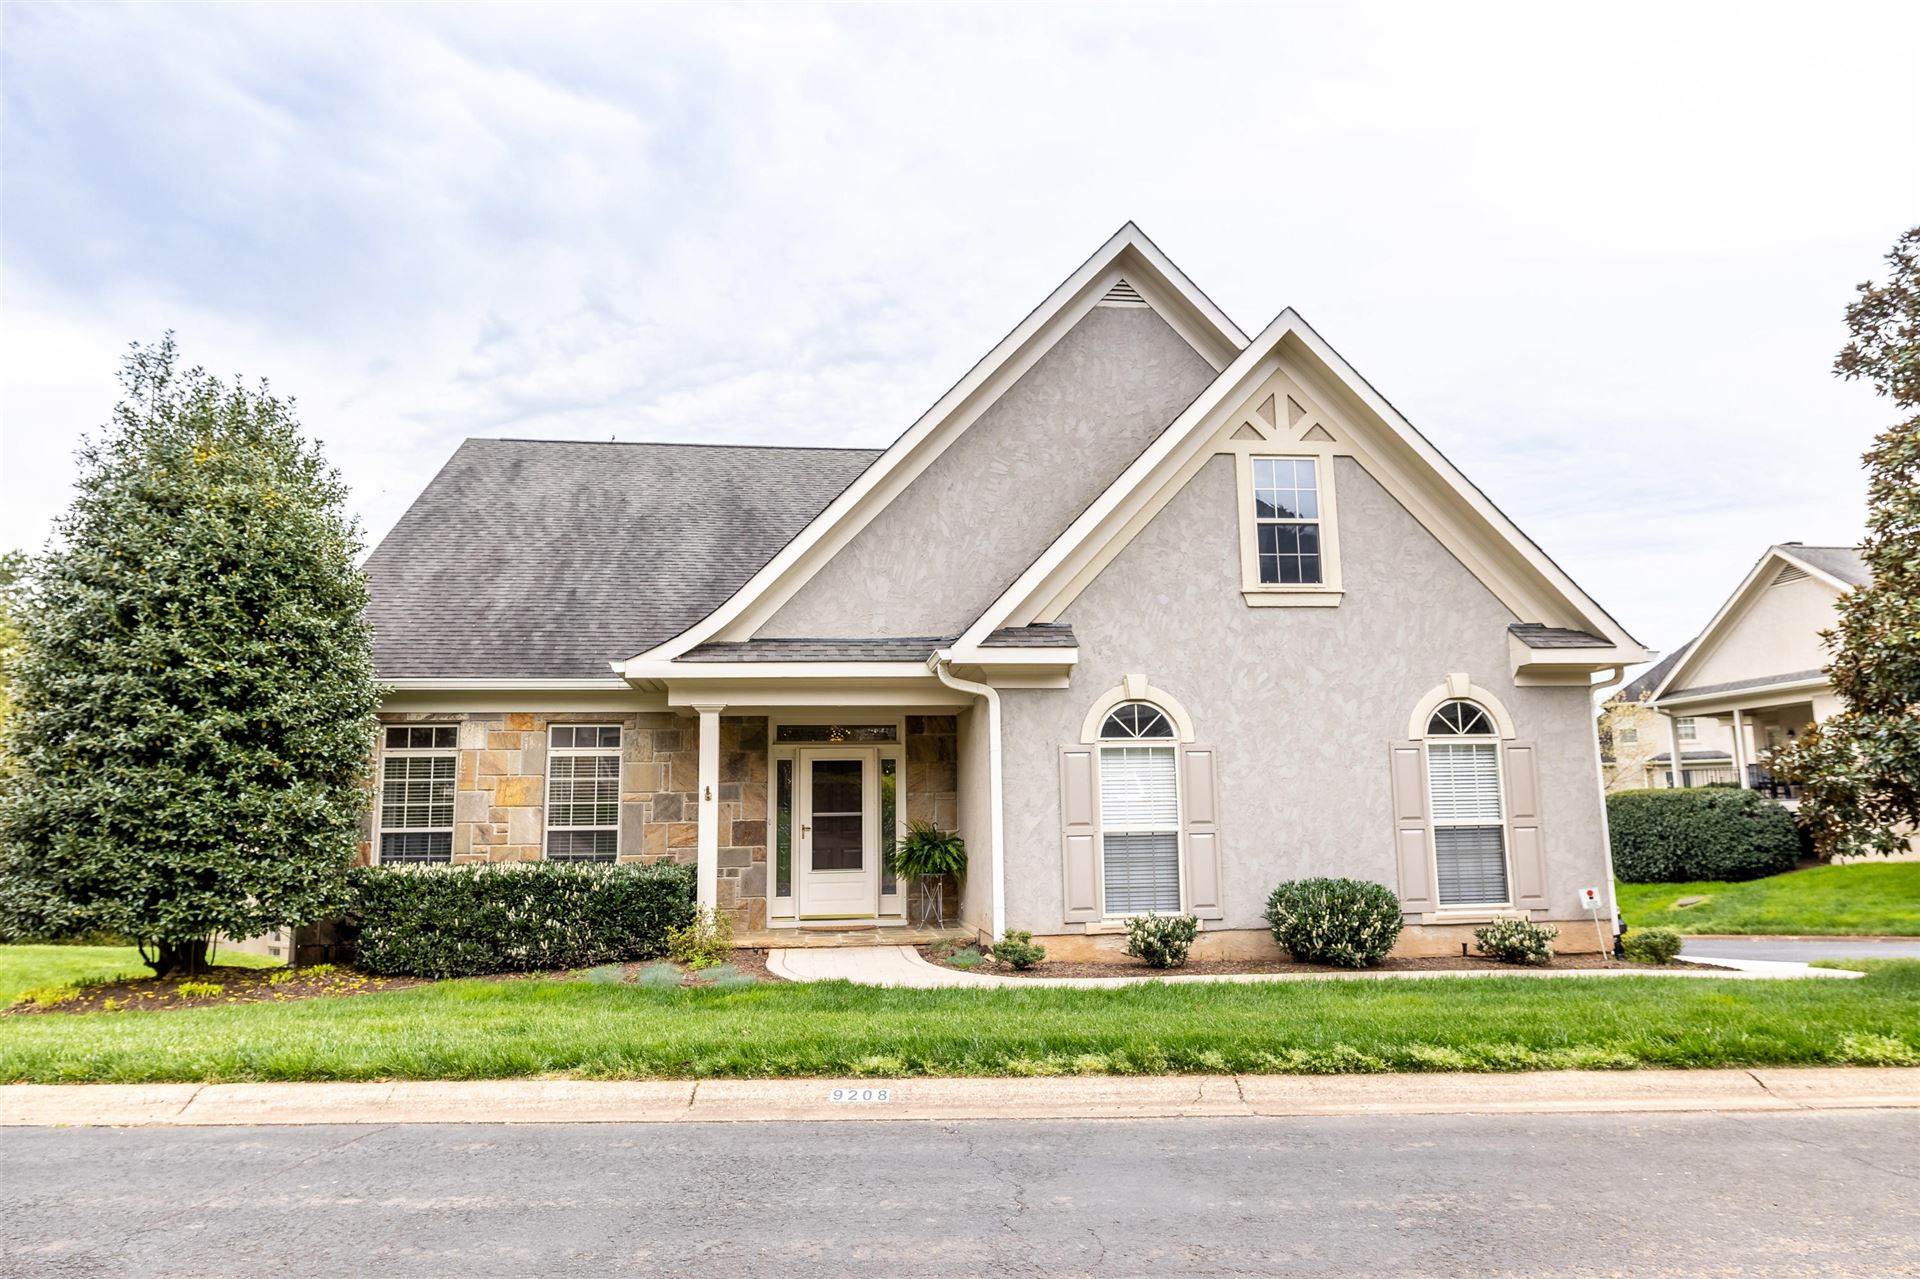 Photo of 9208 Putters Way, Knoxville, TN 37922 (MLS # 1149094)